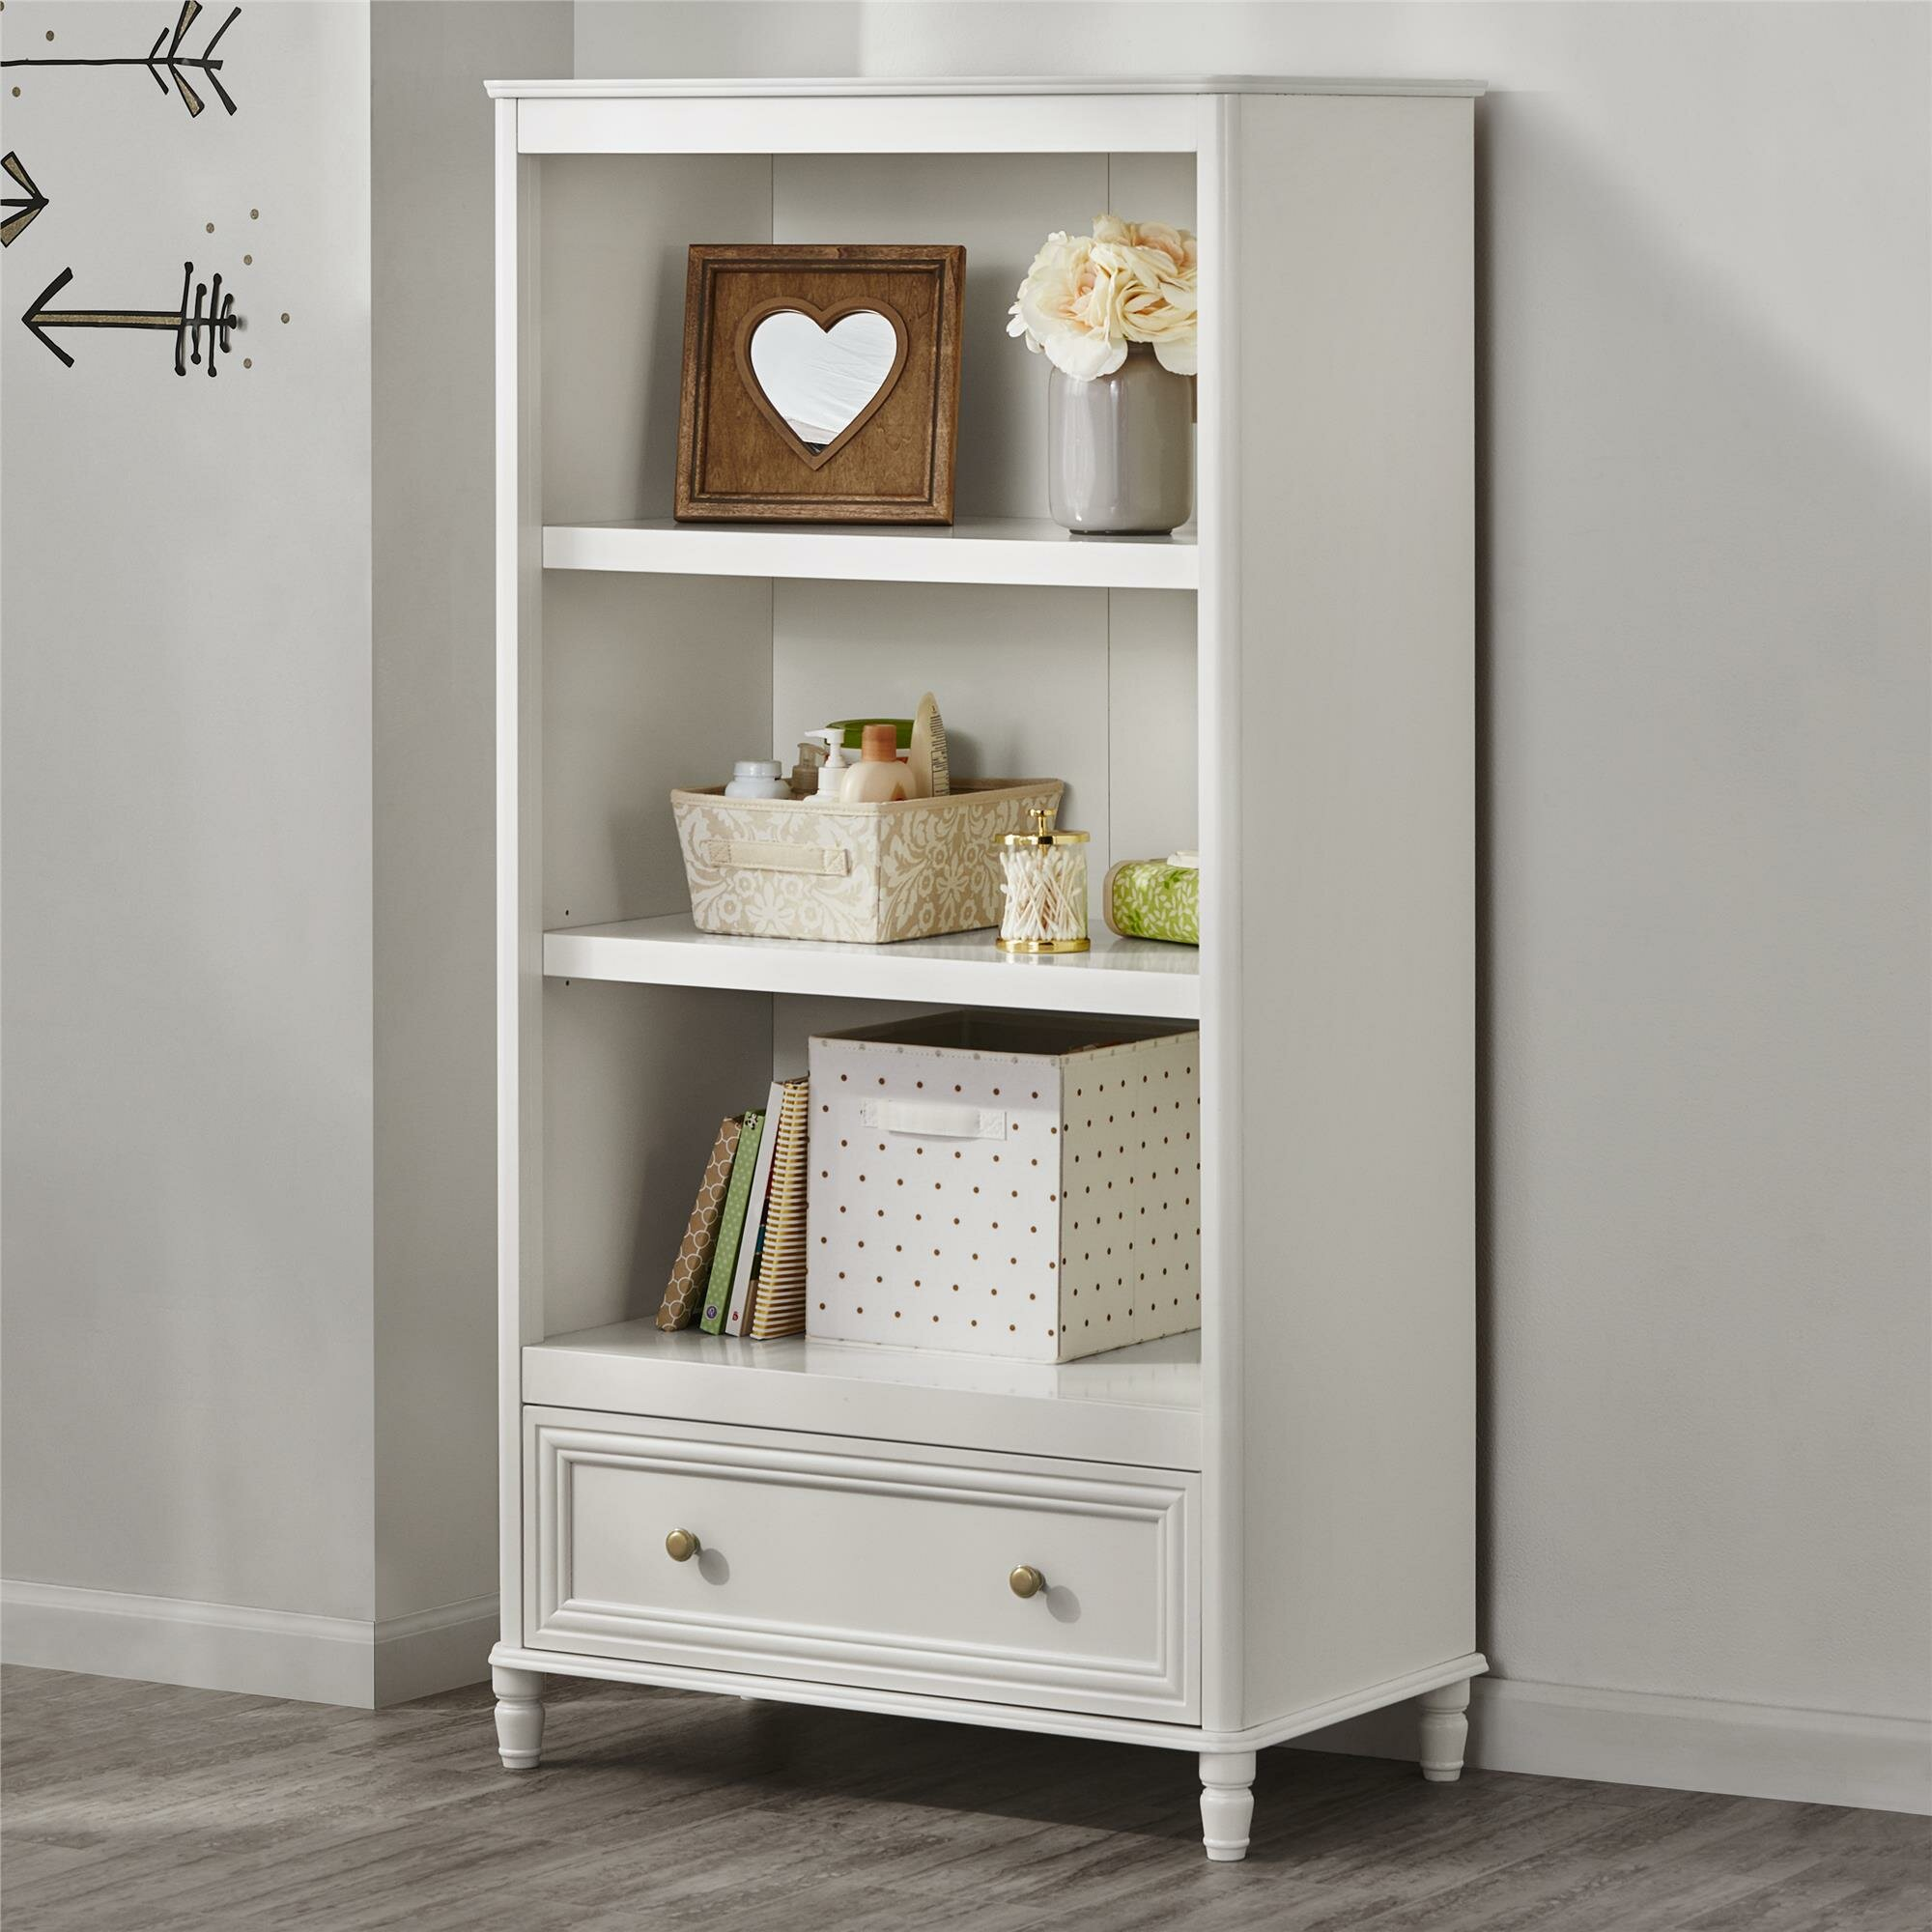 hack reveal ps interiors dresser bookshelf diy bookcase built in an toobusy ikea builtin studio